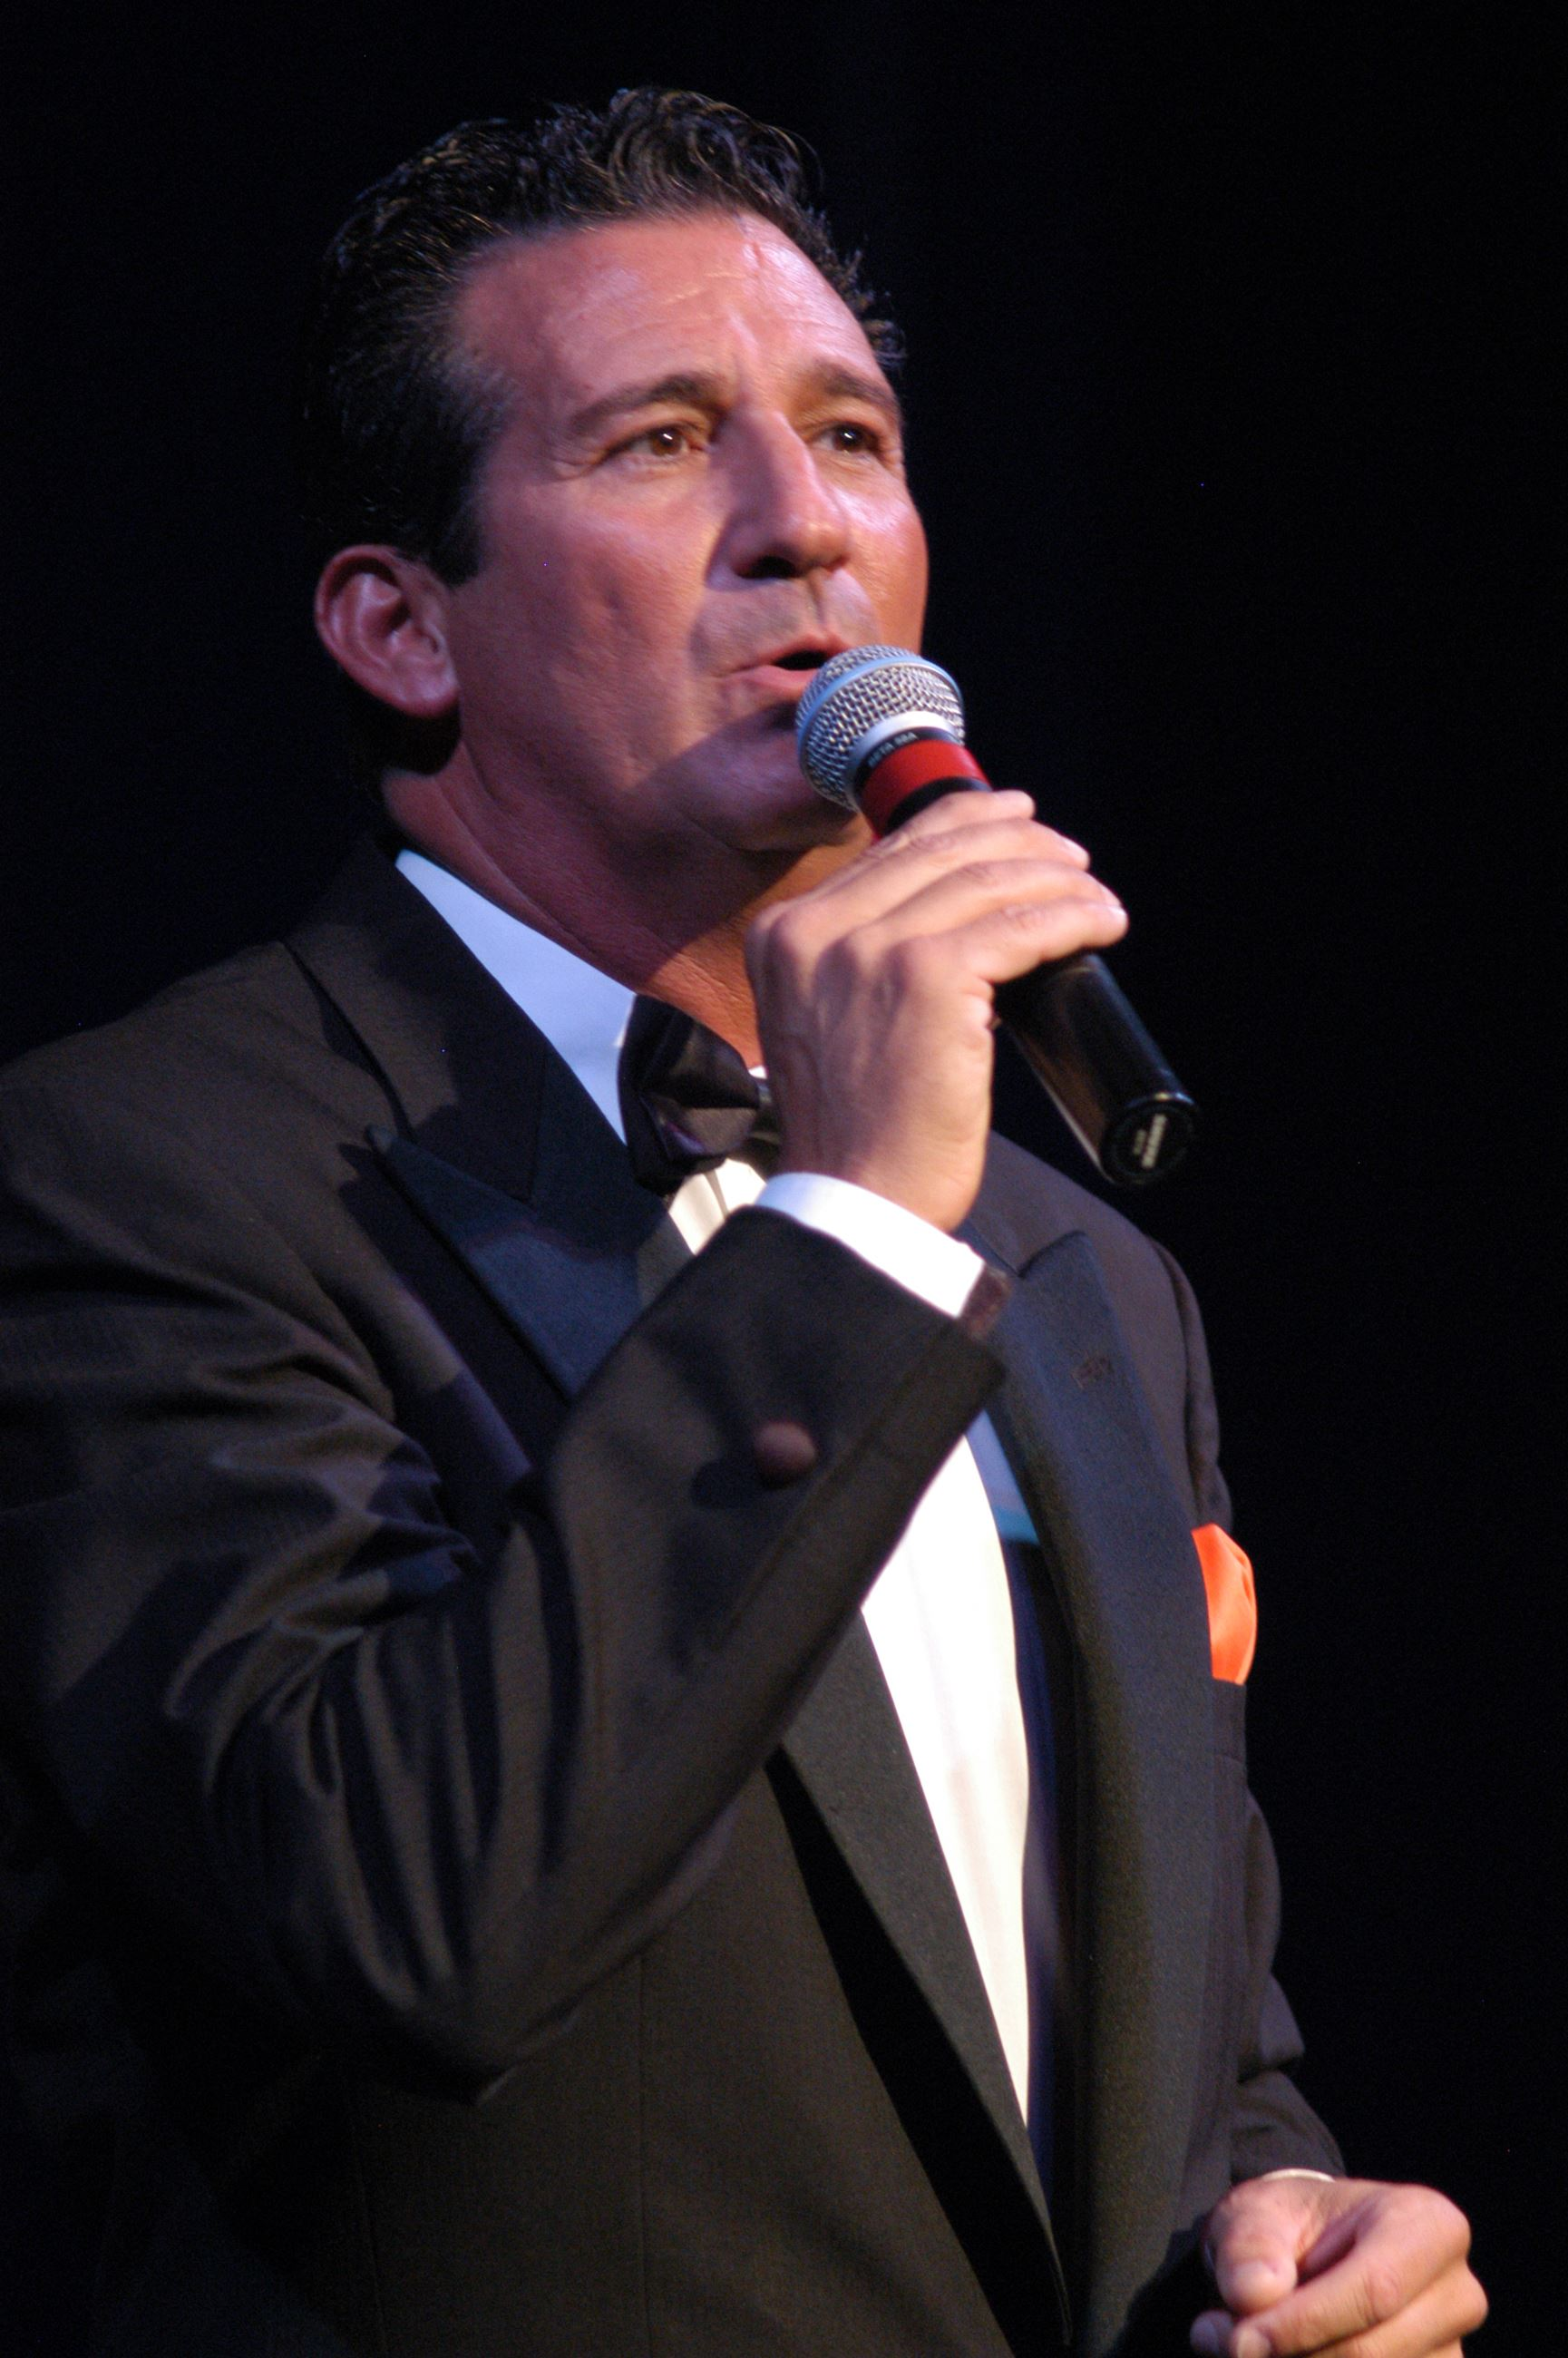 Rick_Michel singing Frank Sinatra on stage